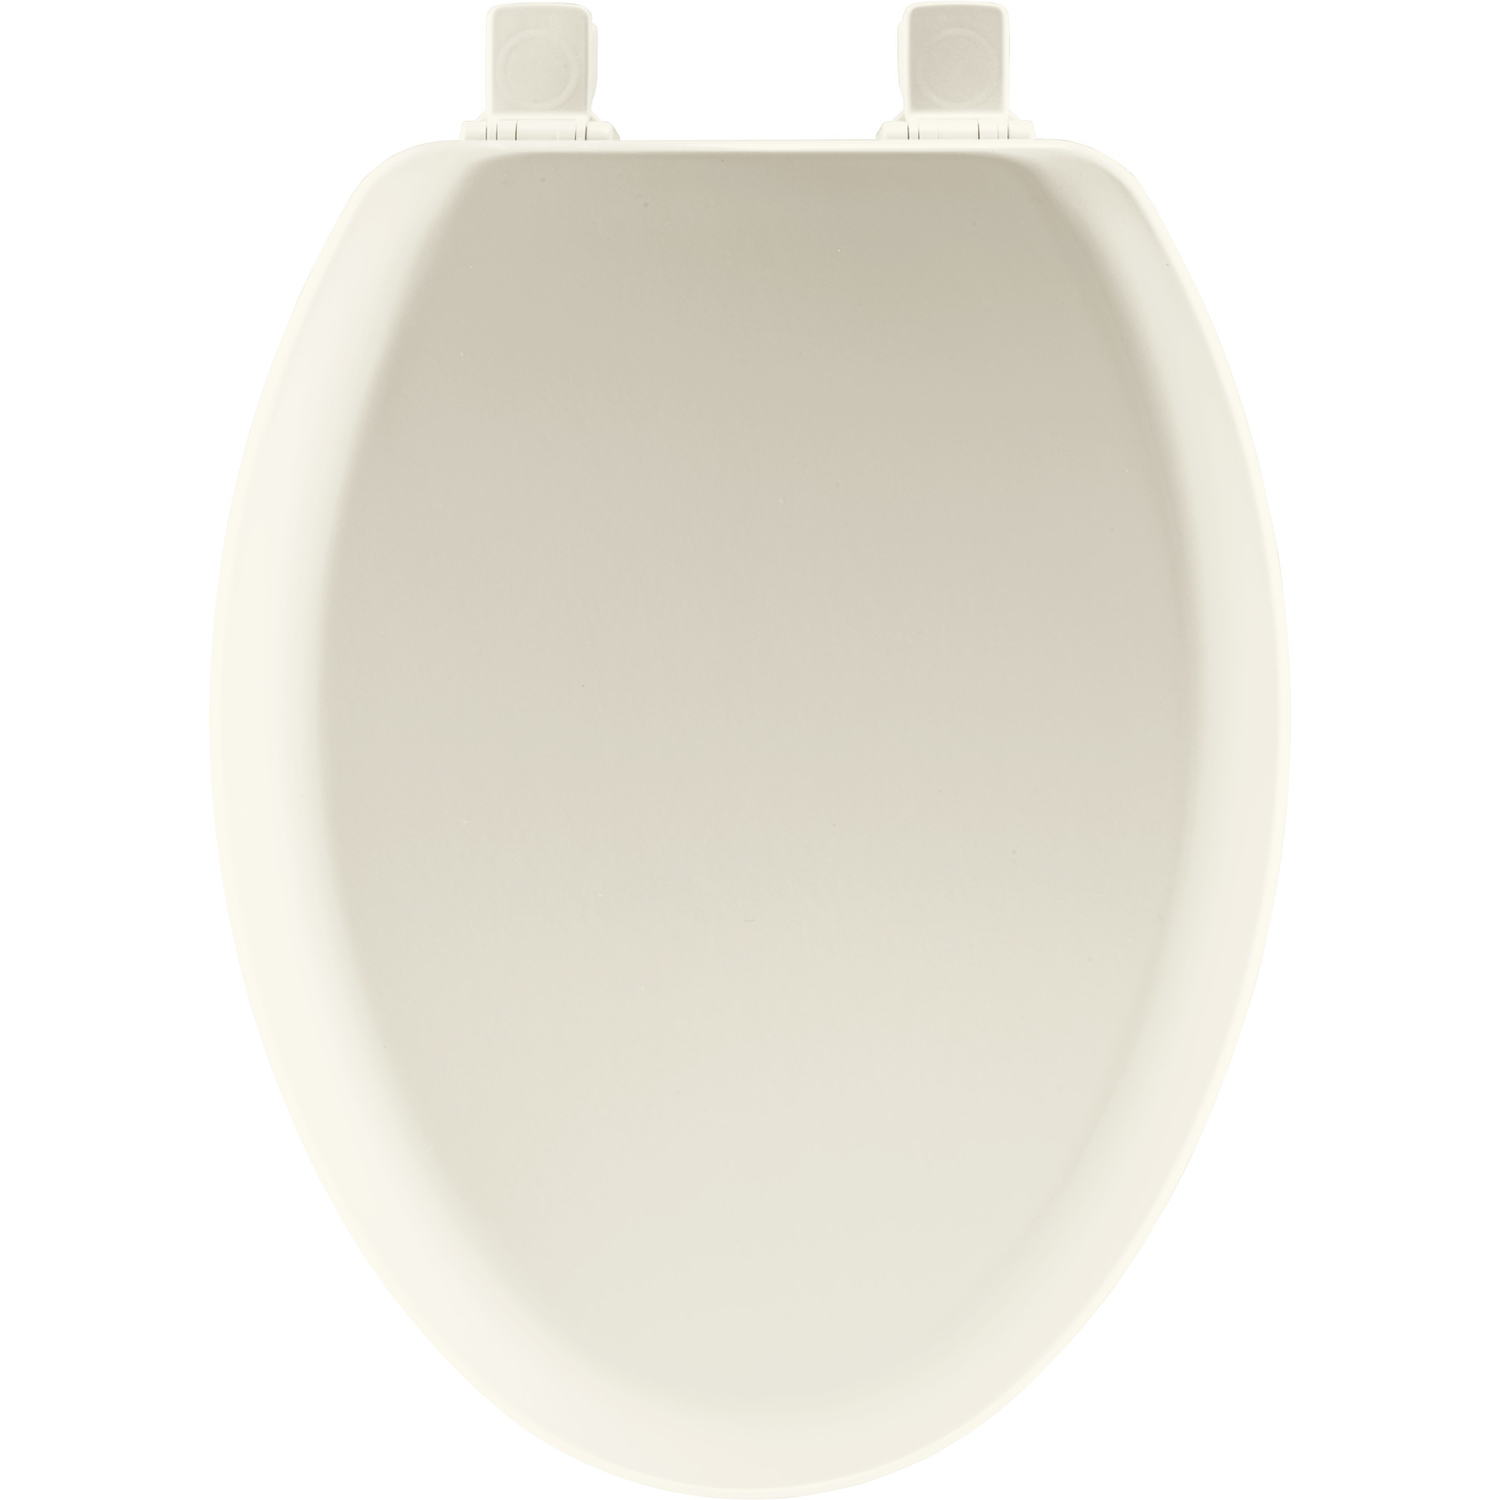 Mayfair  Elongated  Biscuit  Molded Wood  Toilet Seat